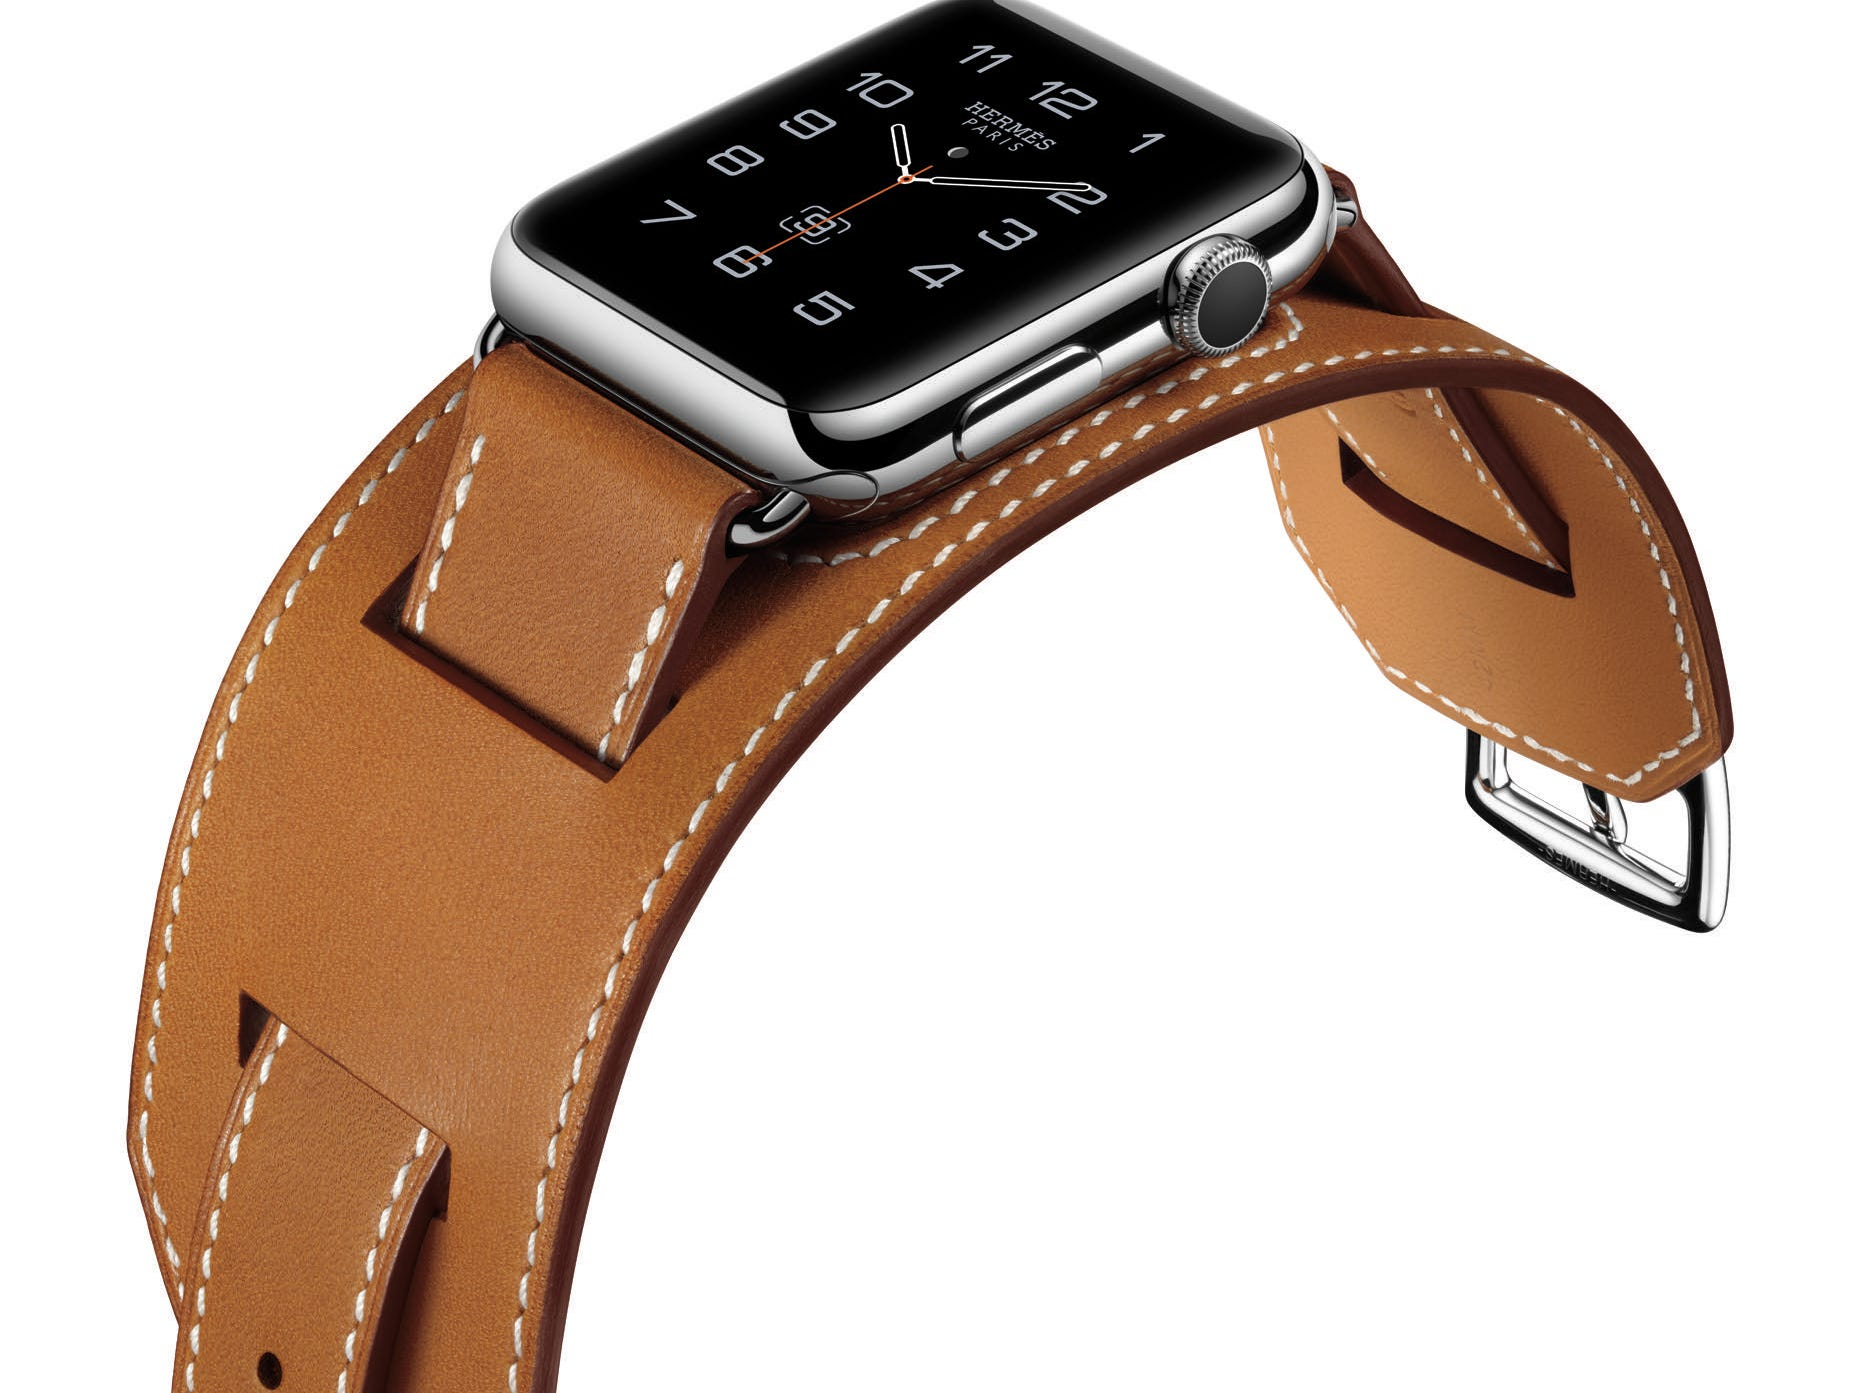 Apple Watch with Hermes band.